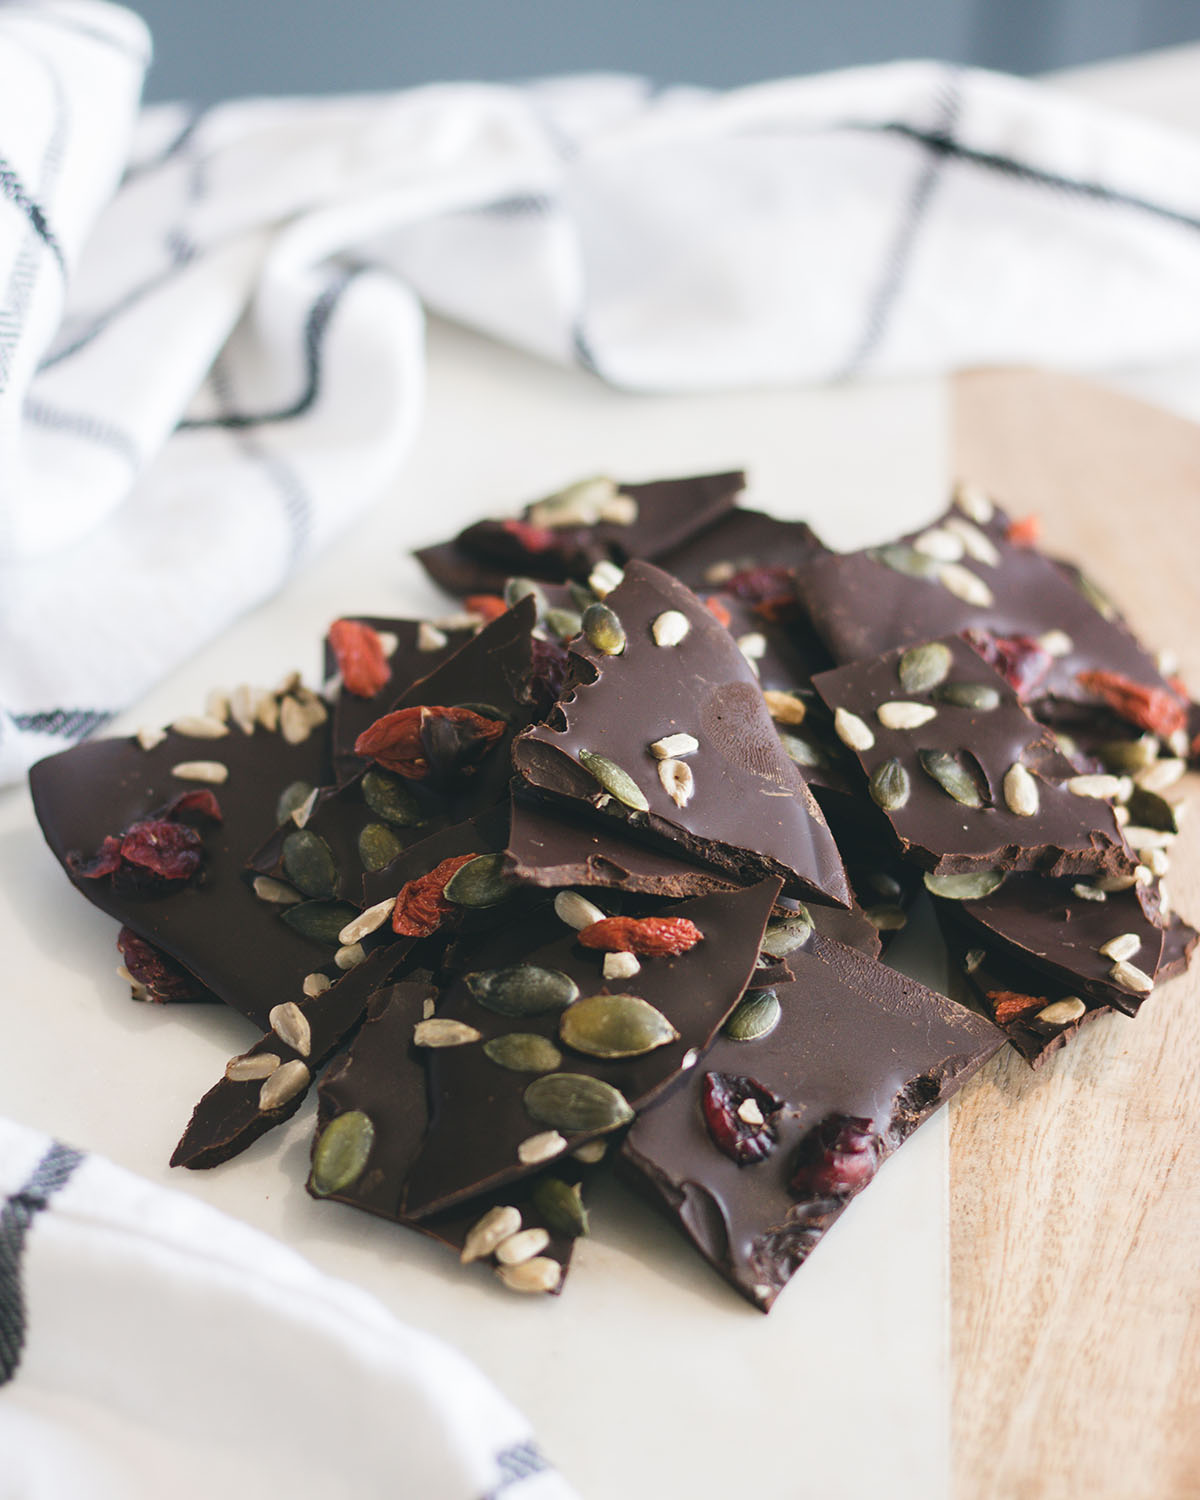 Chocolate brittle recipe with cranberries